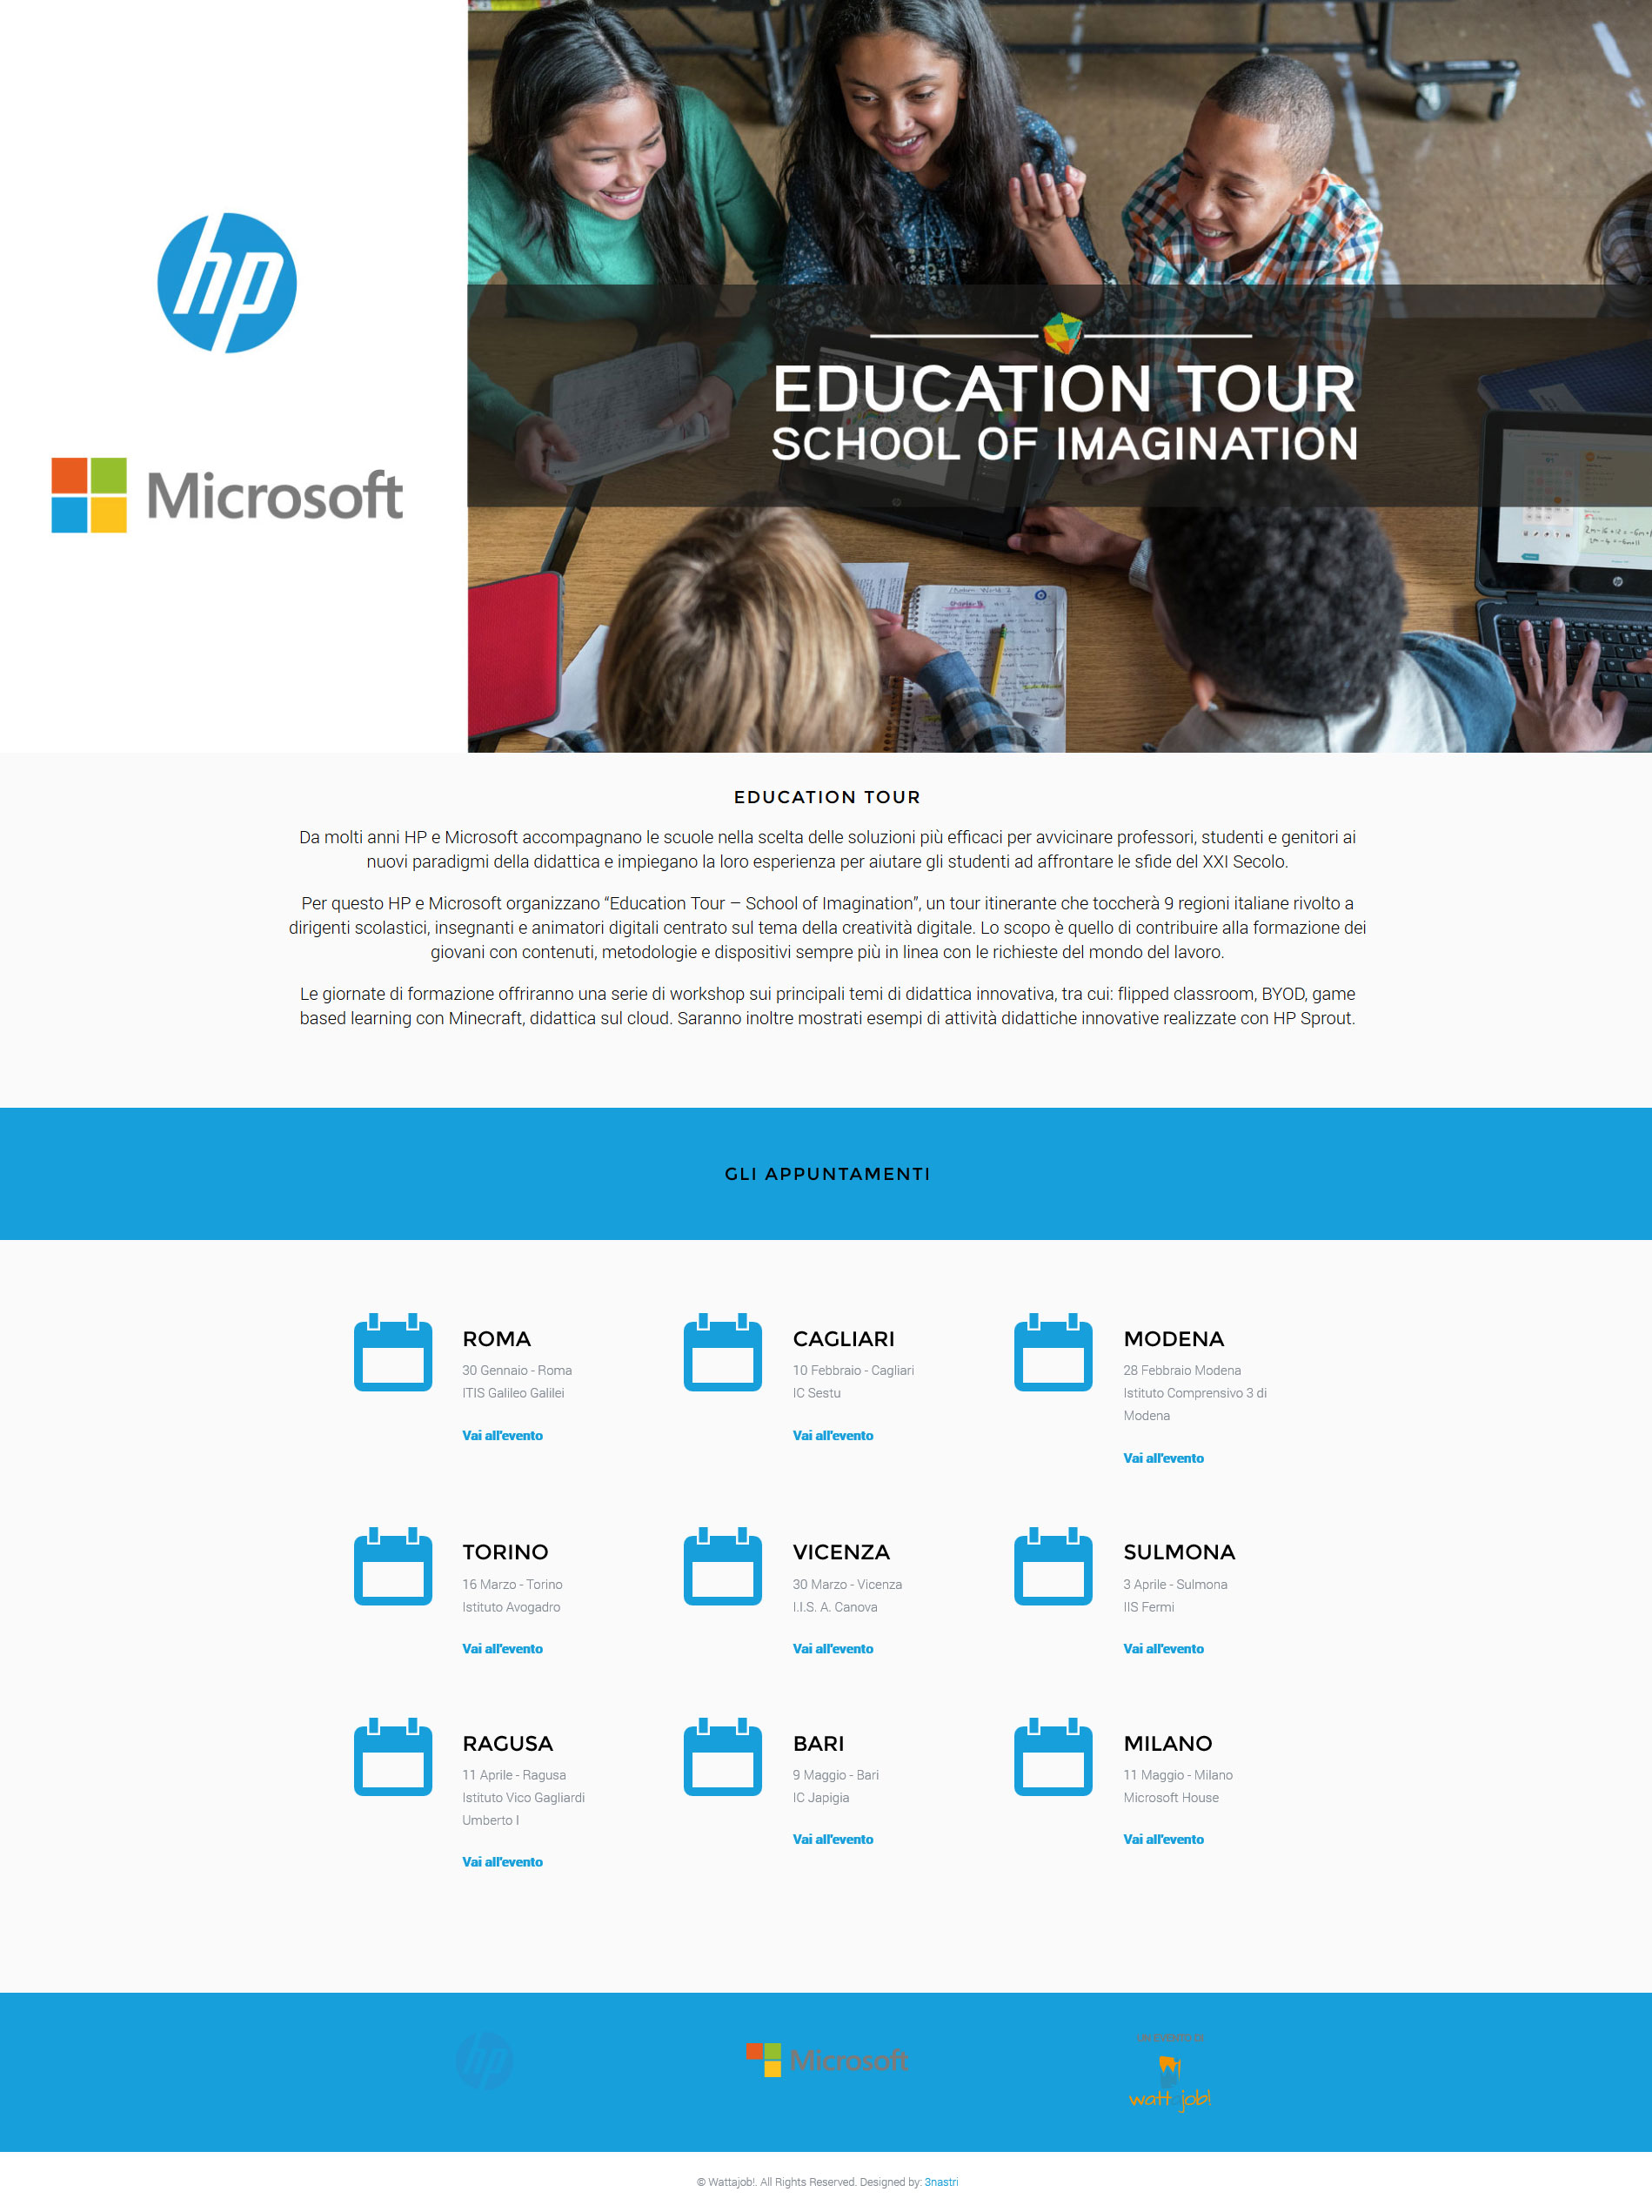 landing-page-education-tour-microsoft-hp